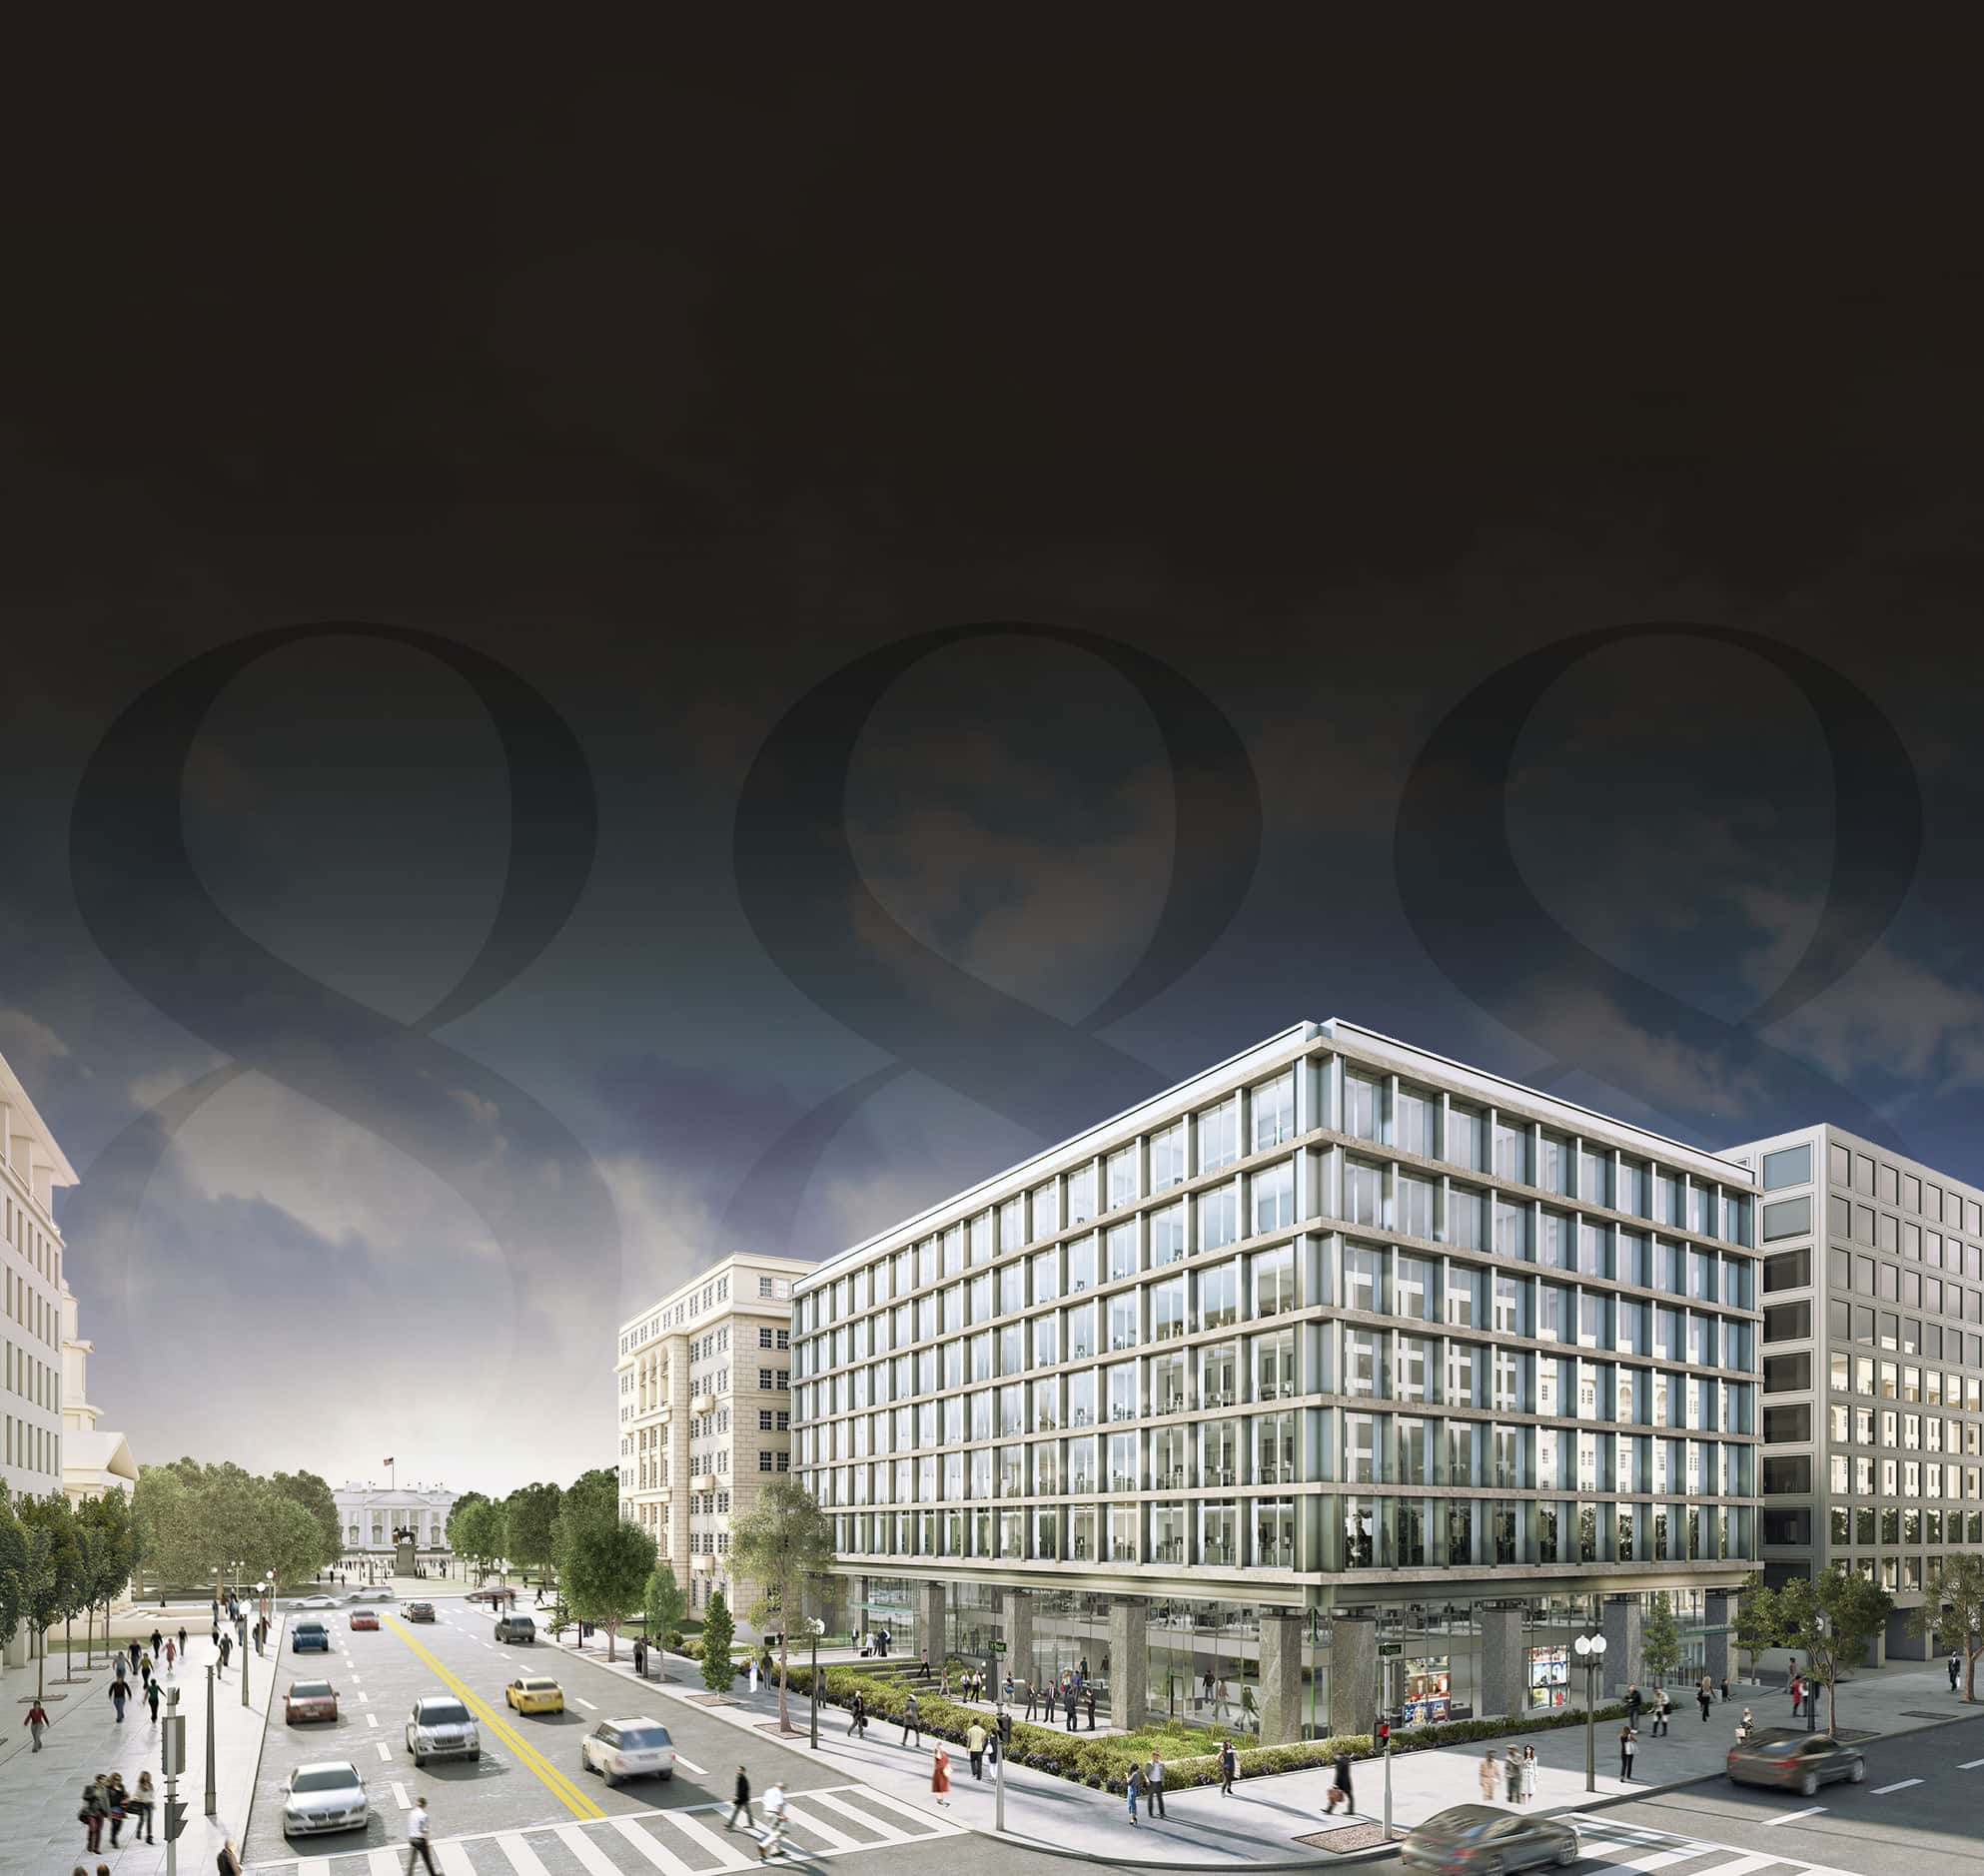 Rendering of 888 Sixteenth Street NW